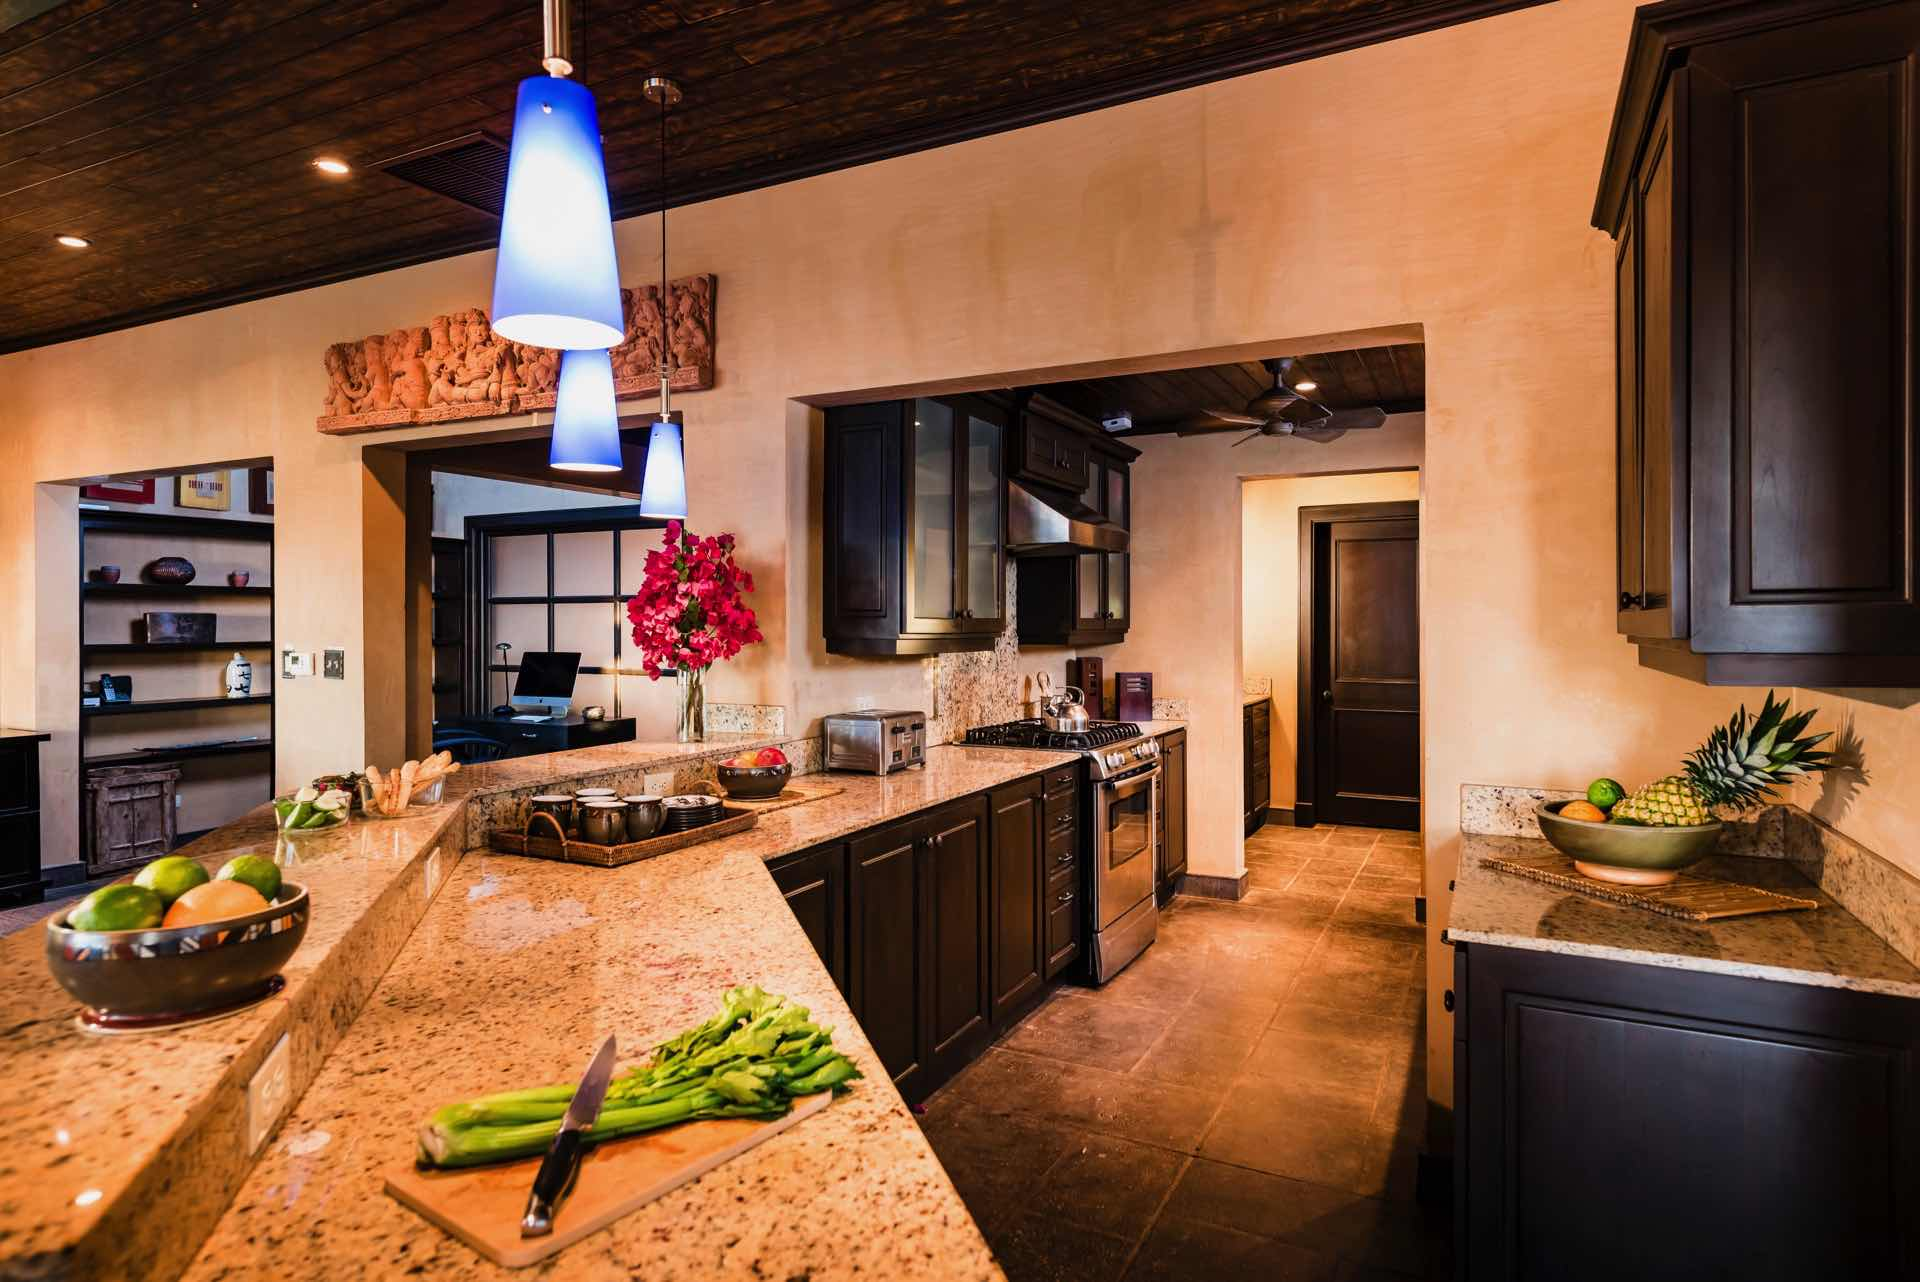 A spacious kitchen equipped with everything you need